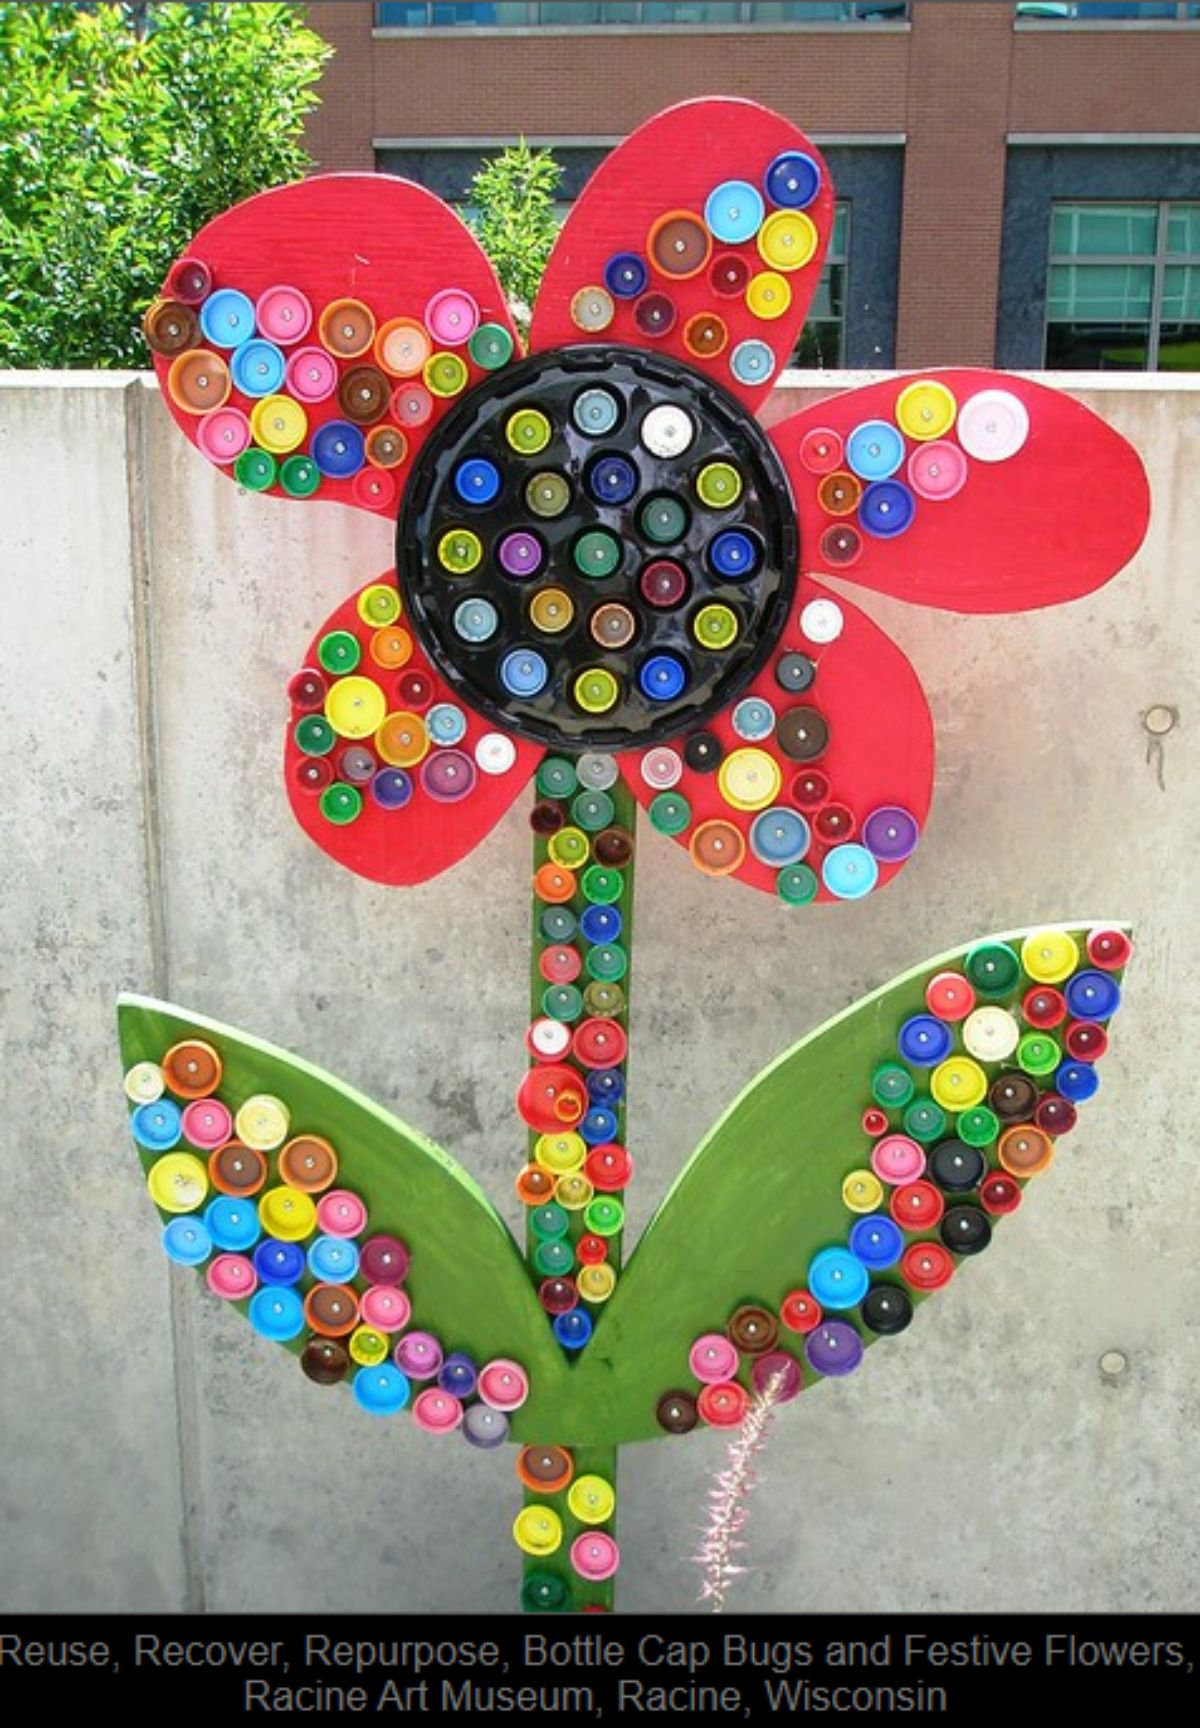 in front of a concrete wall is a flower made of wood and painted red and green. It is decorated with colored bottle tops